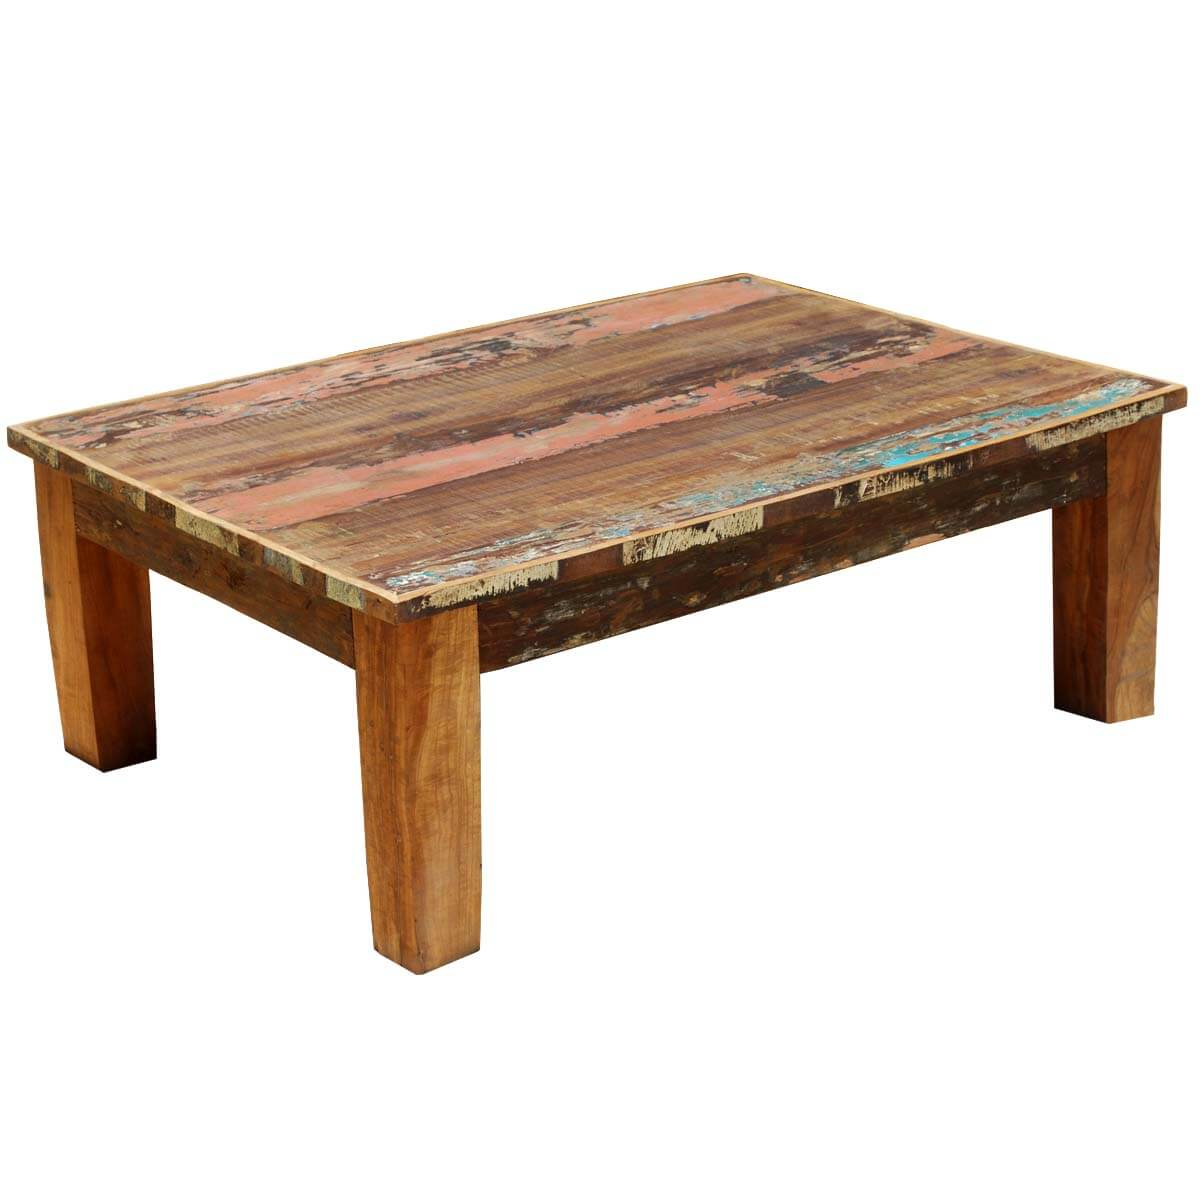 Coffee Tables Images Appalachian Rustic Mixed Reclaimed Wood Coffee Table